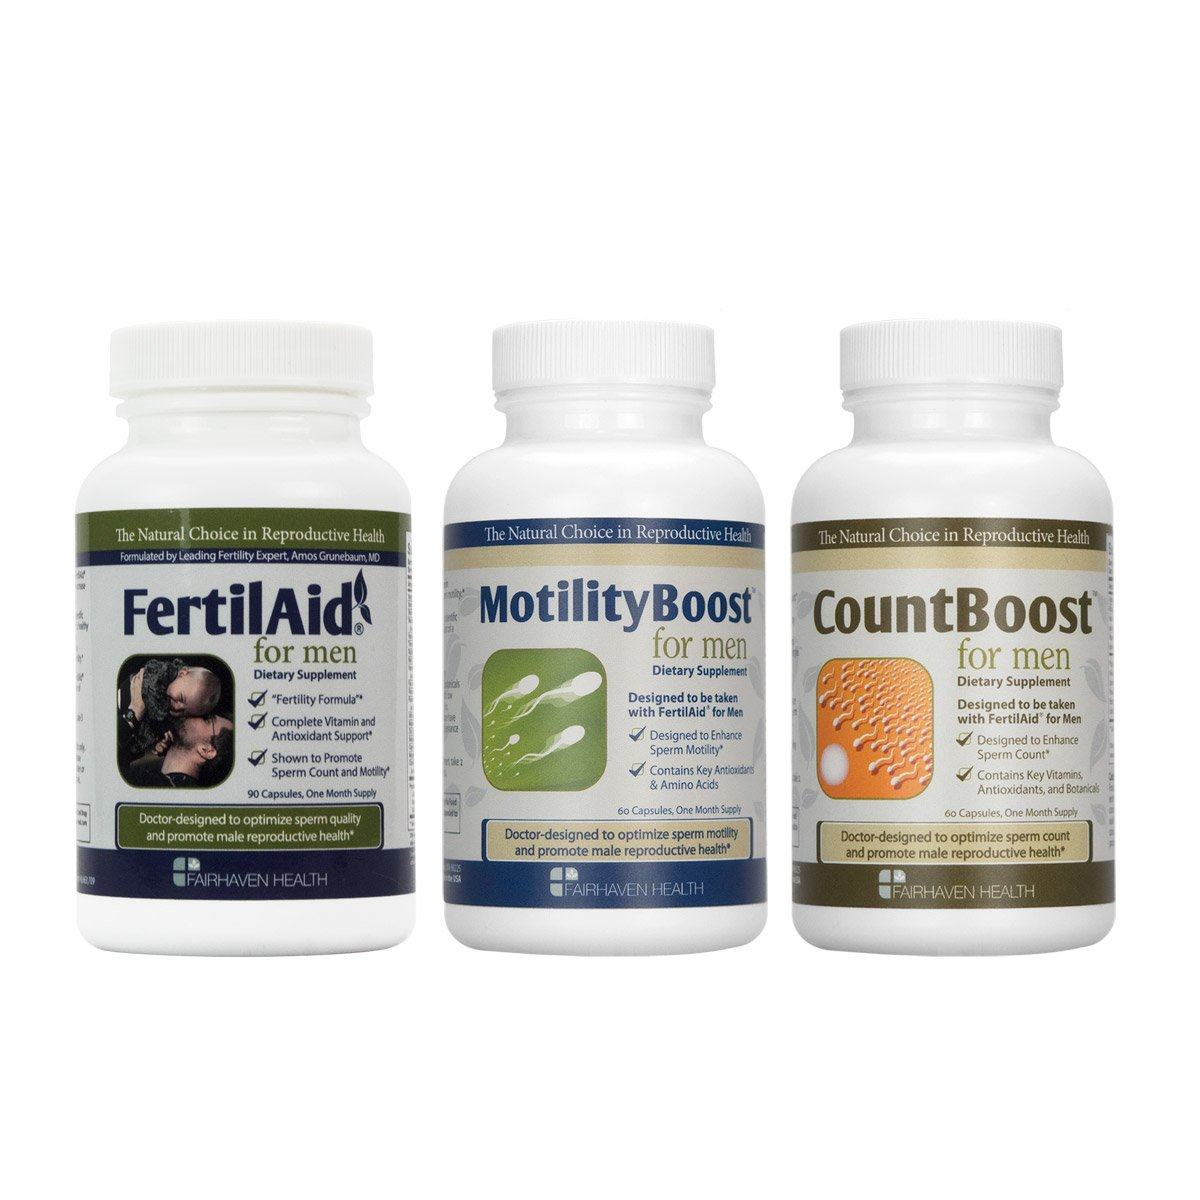 FertilAid for Men, MotilityBoost, Countboost Bundle (1 Month Supply) by Fairhaven Health